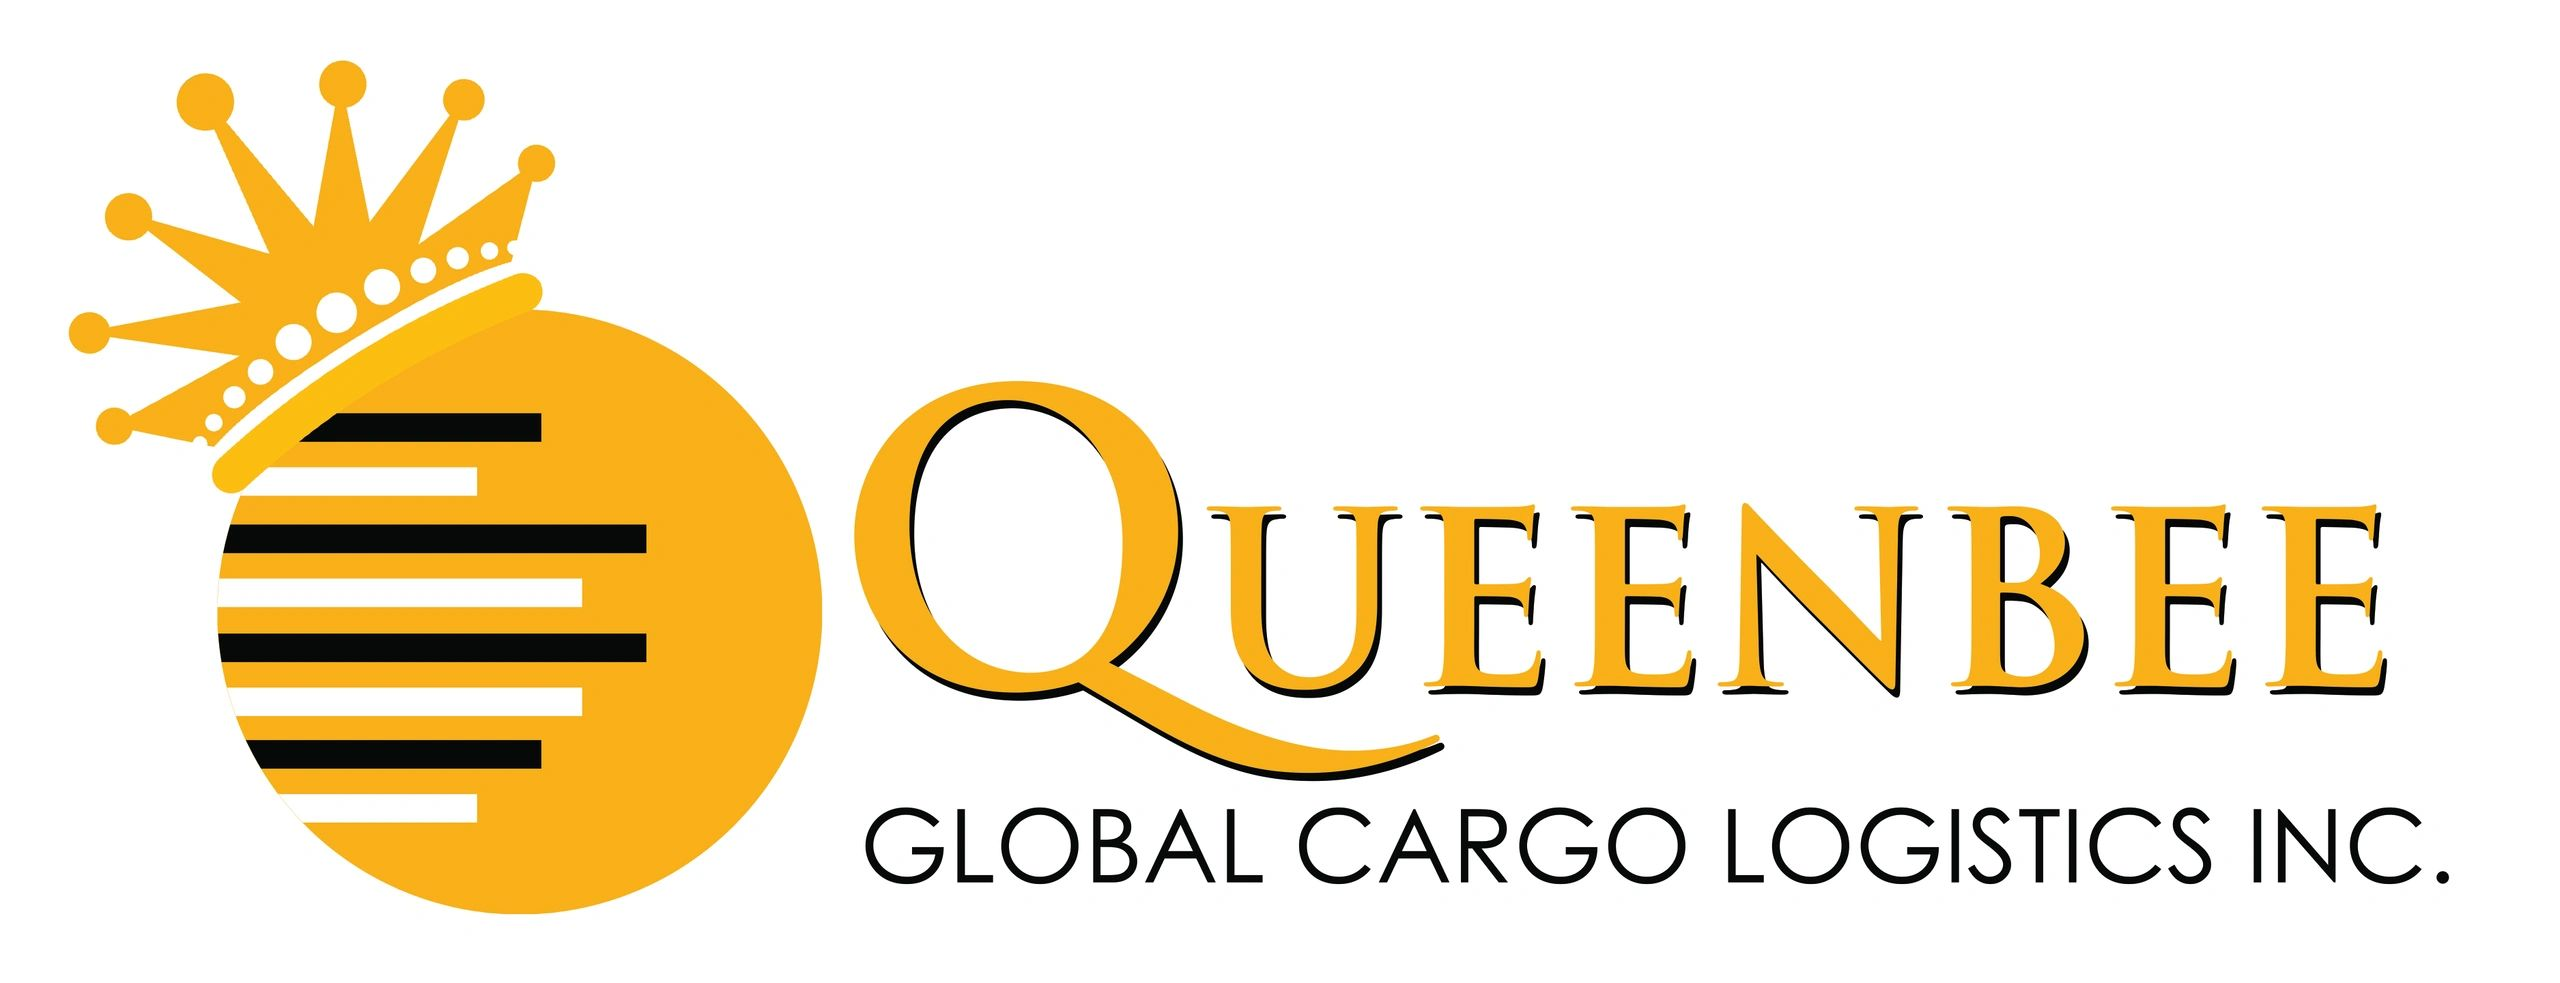 Our Team | QUEENBEE GLOBAL CARGO LOGISTICS INC